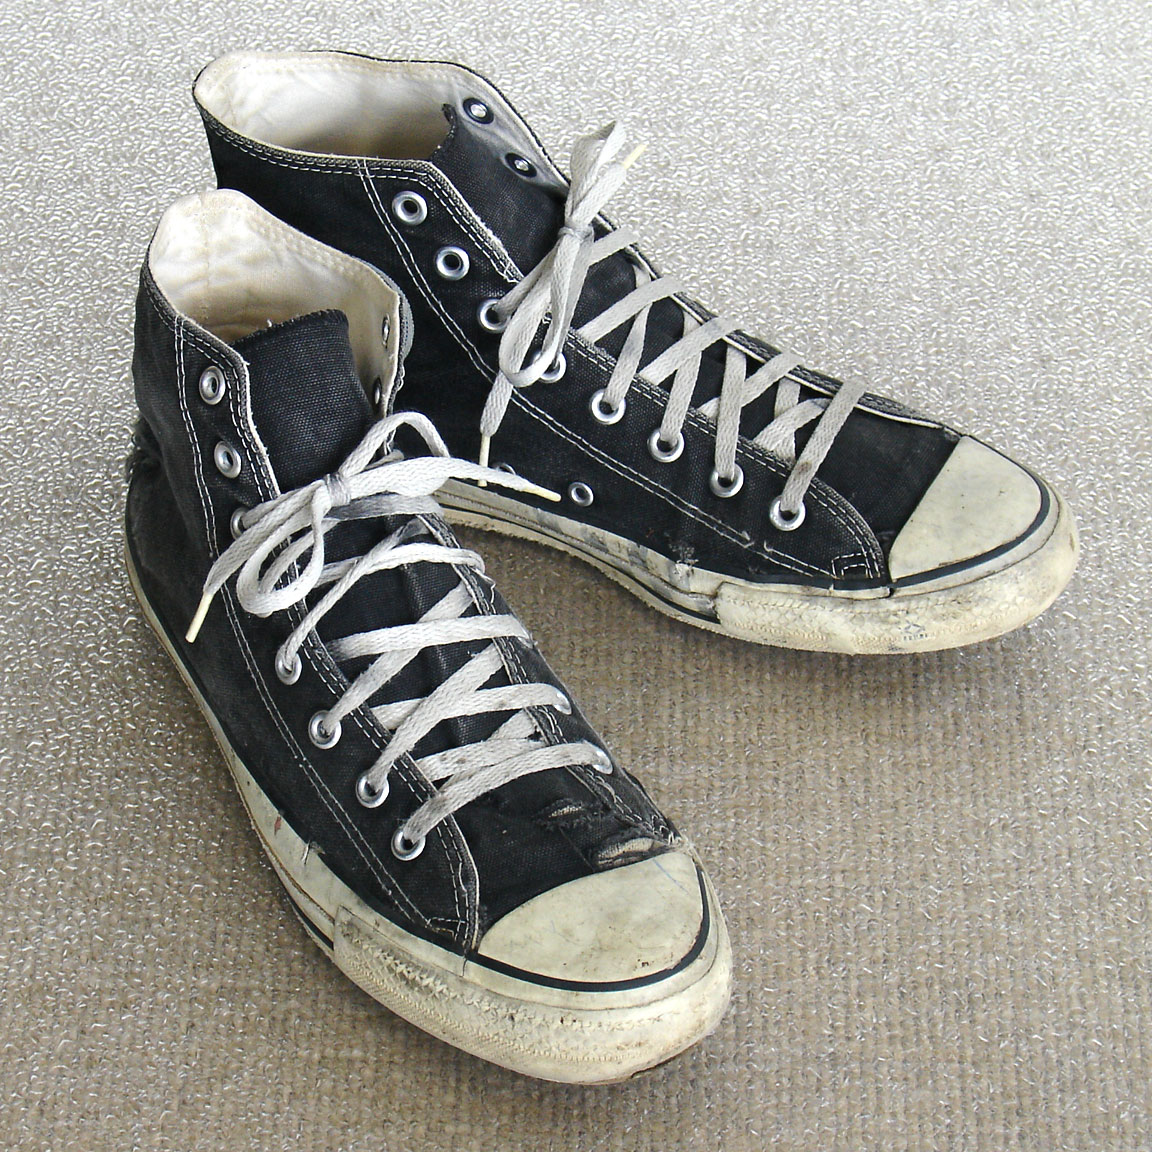 Vintage American Made Converse All Star Chuck Taylors For Sale